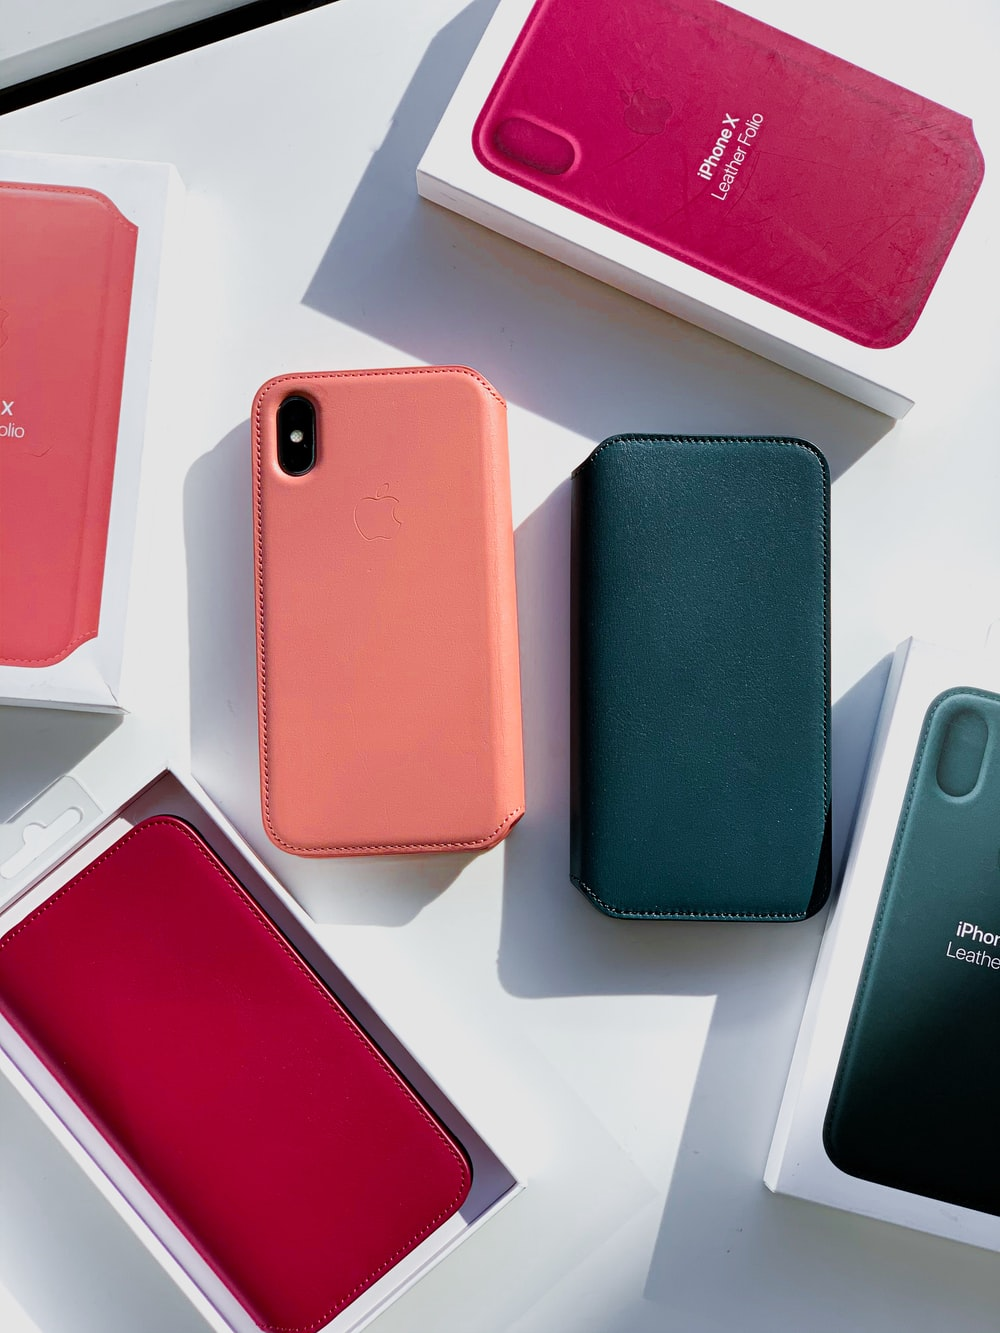 pink iPhone X among boxes